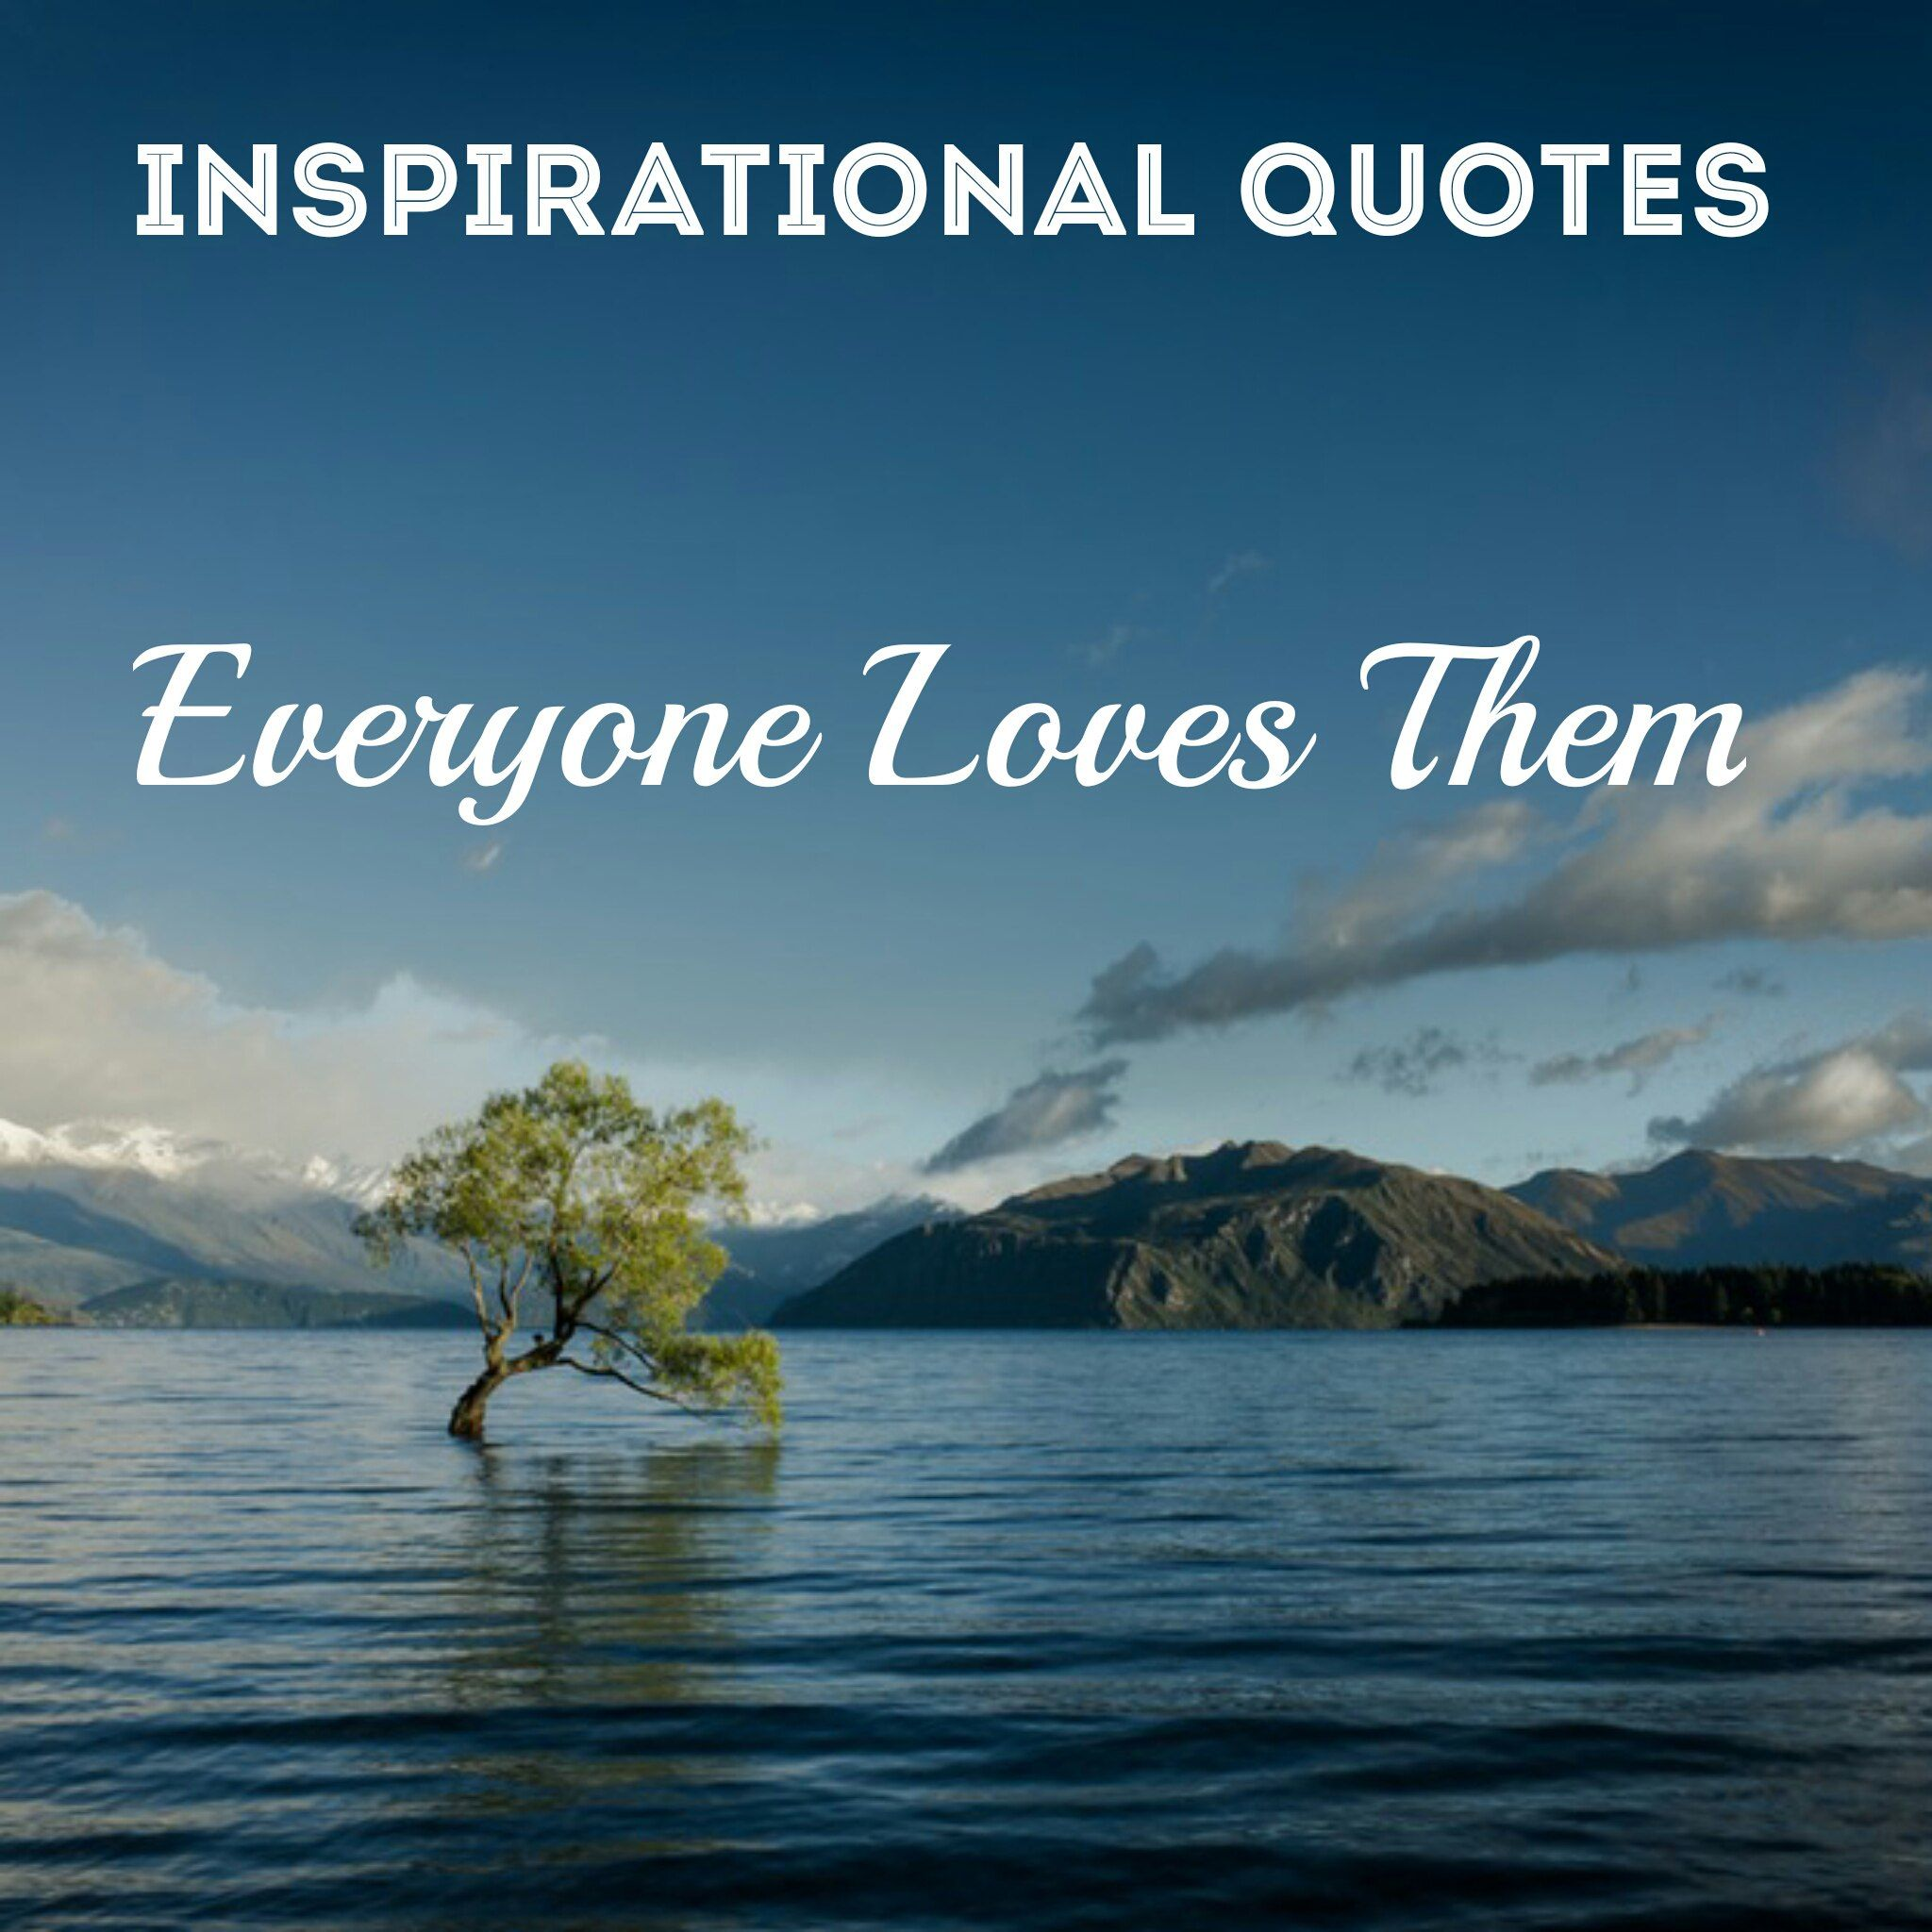 Inspirational Quote About Life 154 Best Inspirational Quotes & Sayings Of All Time